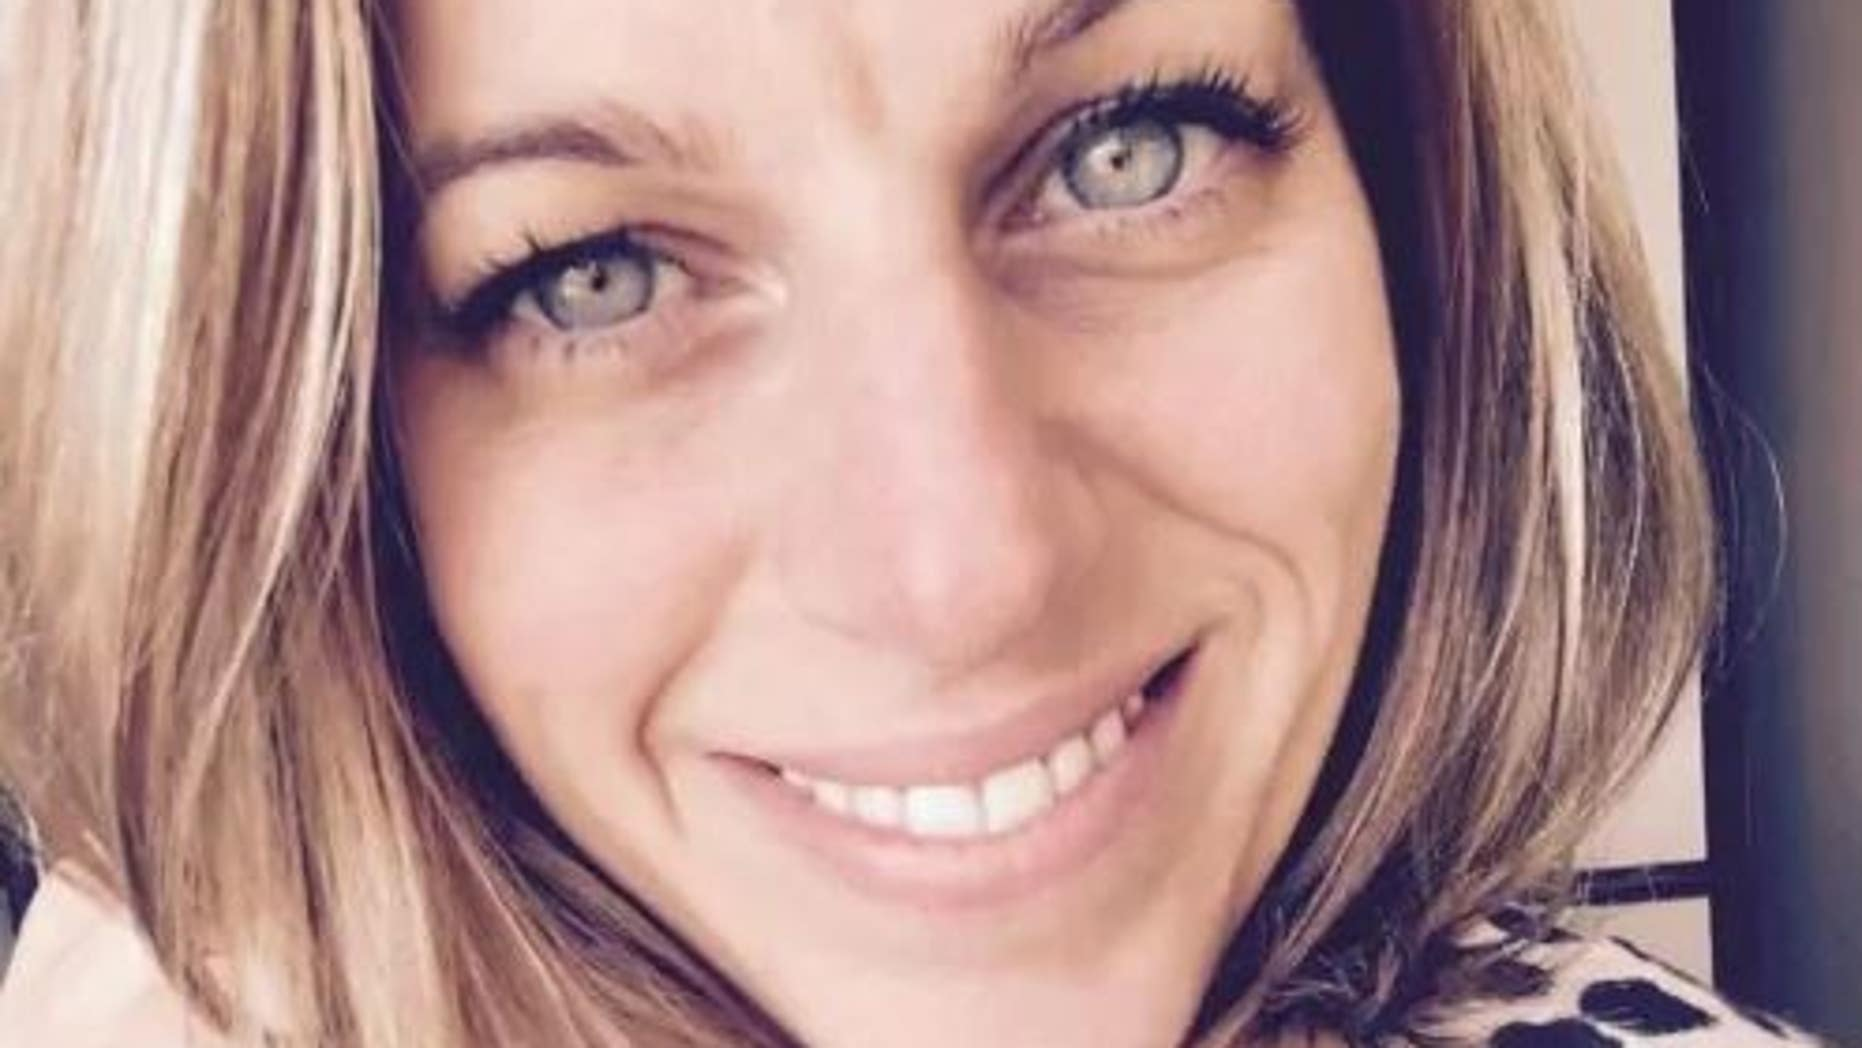 The body believed to be Christine St-Onge was found near a hotel in Los Cabos, Mexico, authorities said.